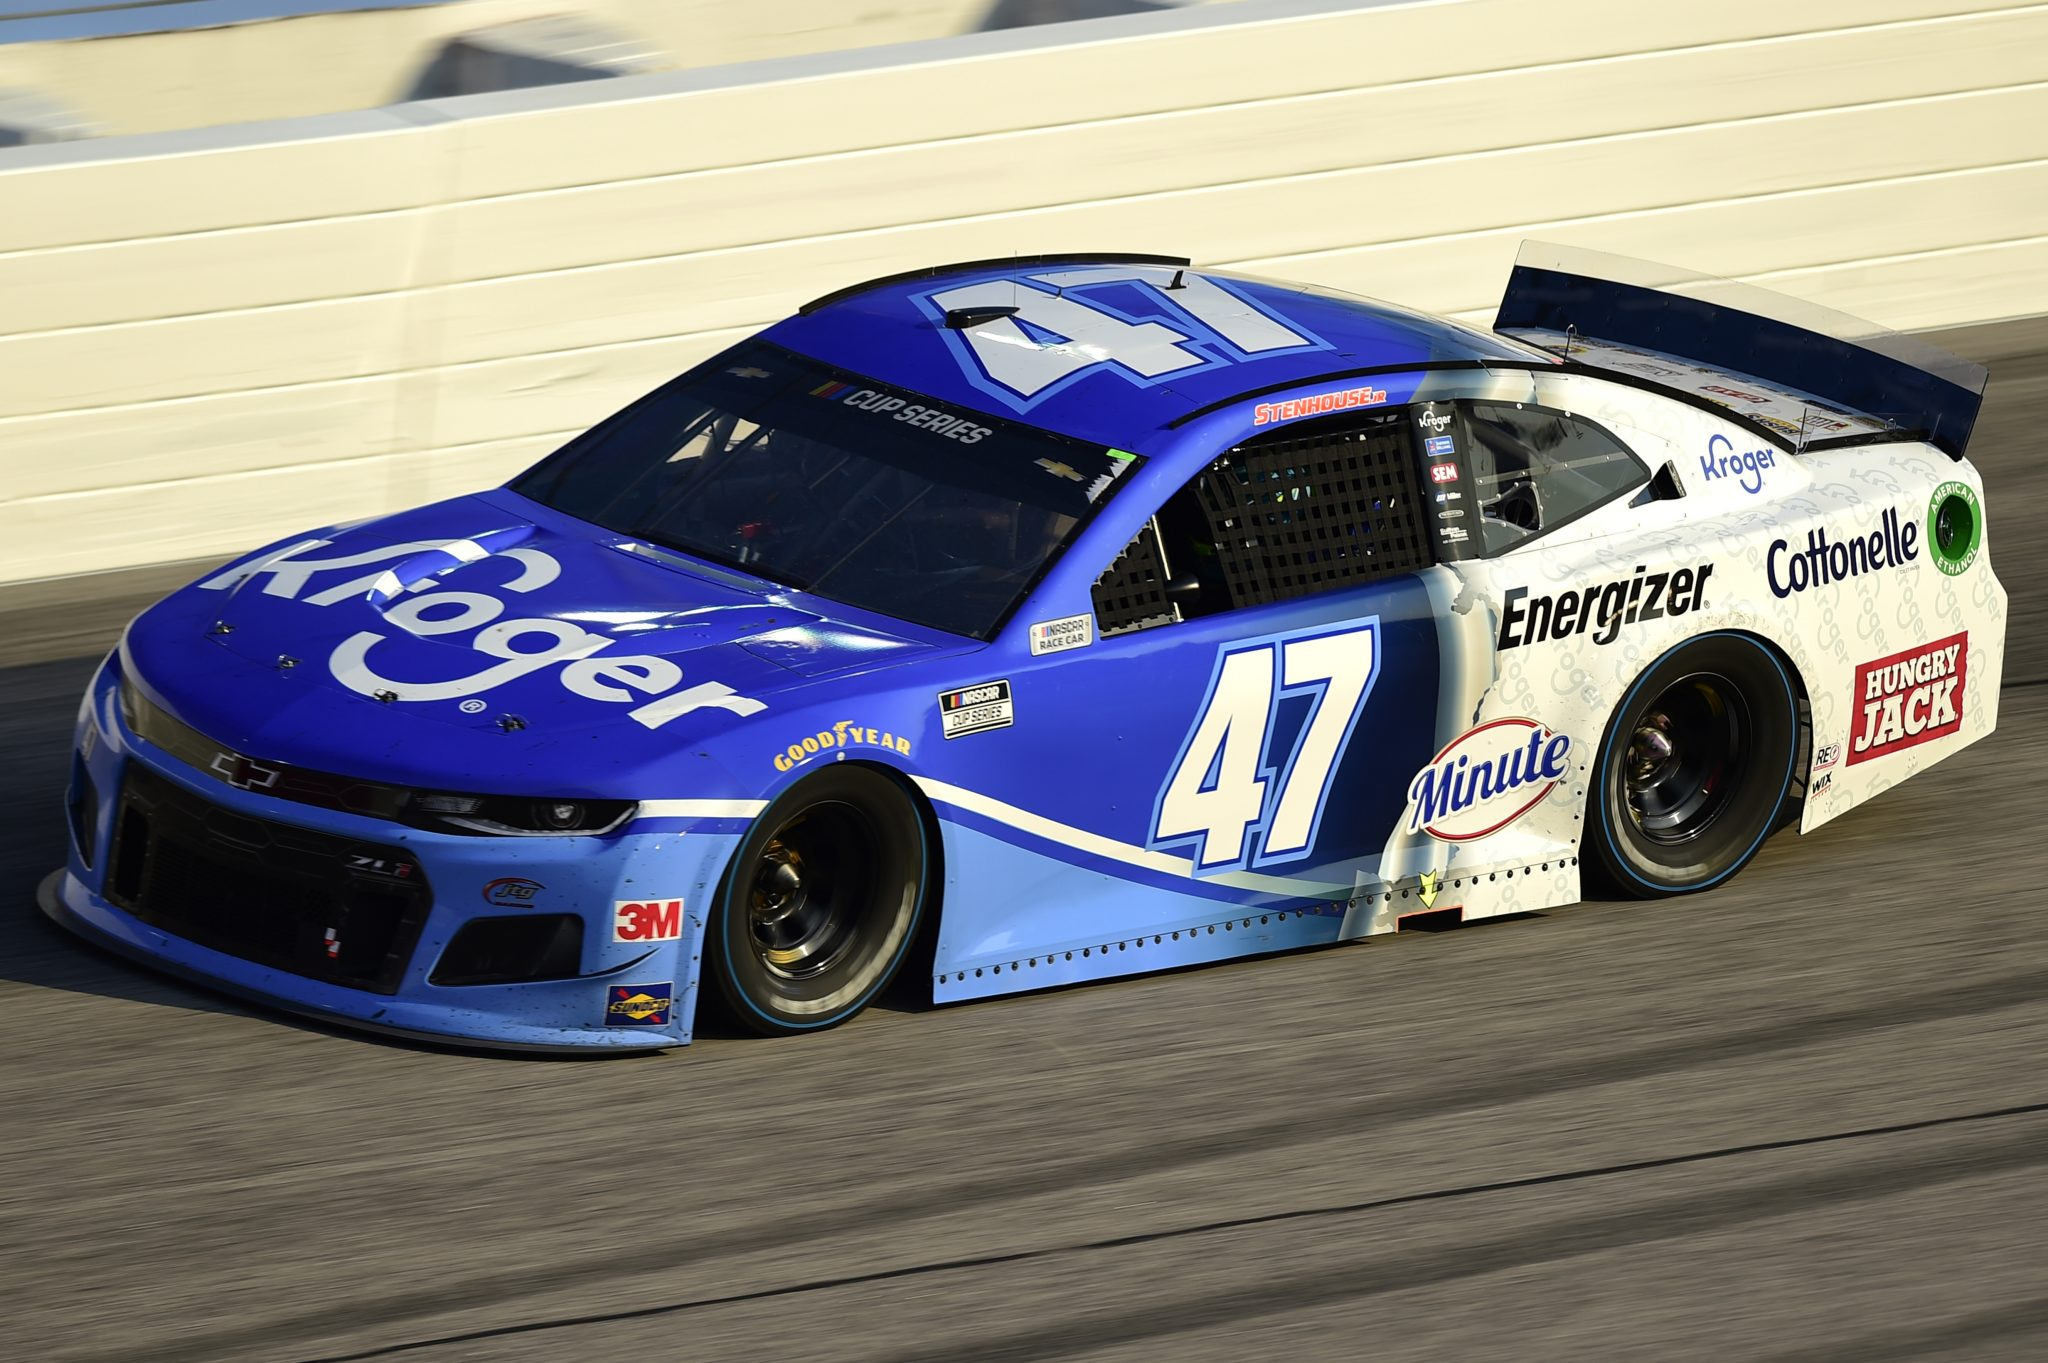 DARLINGTON, SOUTH CAROLINA - SEPTEMBER 06: Ricky Stenhouse Jr., driver of the #47 Kroger Chevrolet, drives during the NASCAR Cup Series Cook Out Southern 500 at Darlington Raceway on September 06, 2020 in Darlington, South Carolina. (Photo by Jared C. Tilton/Getty Images) | Getty Images